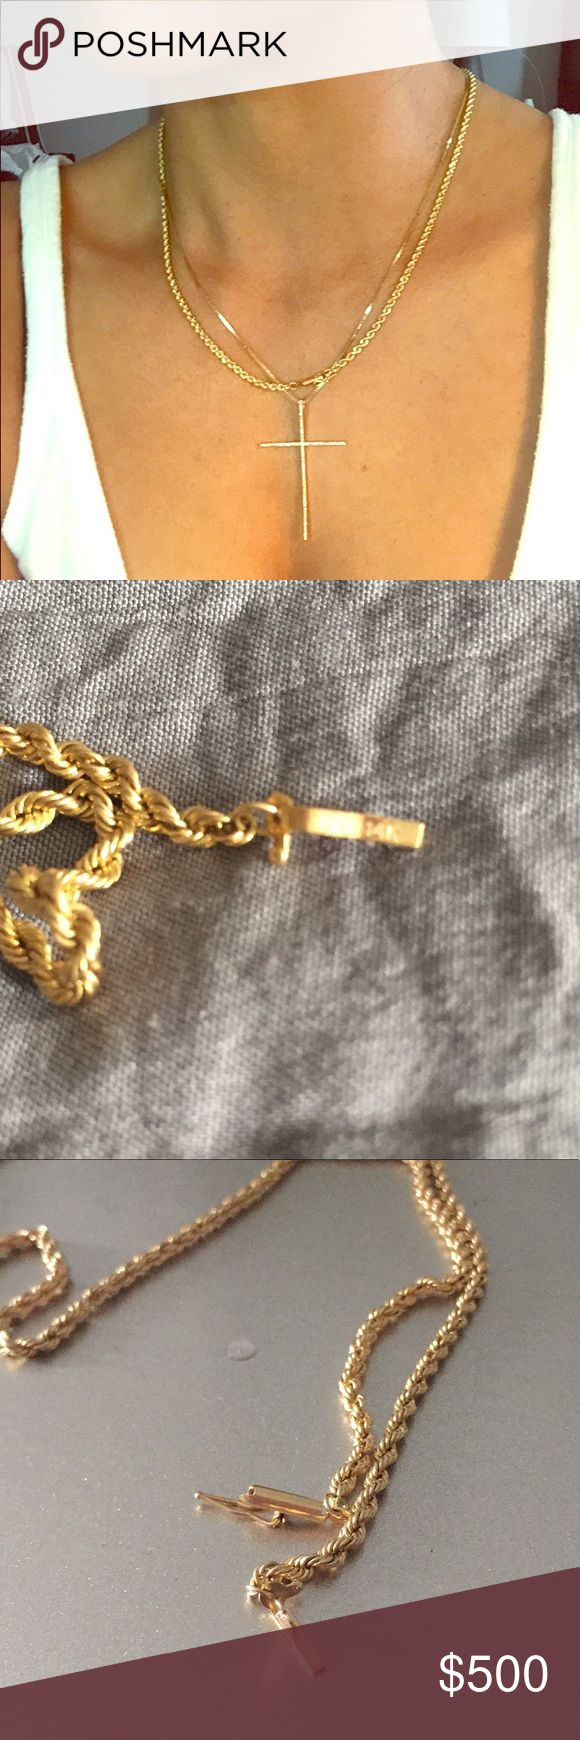 """Genuine 14K GOLD ROPE CHAIN 18"""" Genuine authentic. Great quality, great locks.  About 18 inches. Cross necklace and pendant not included. 14k Jewelry Necklaces"""